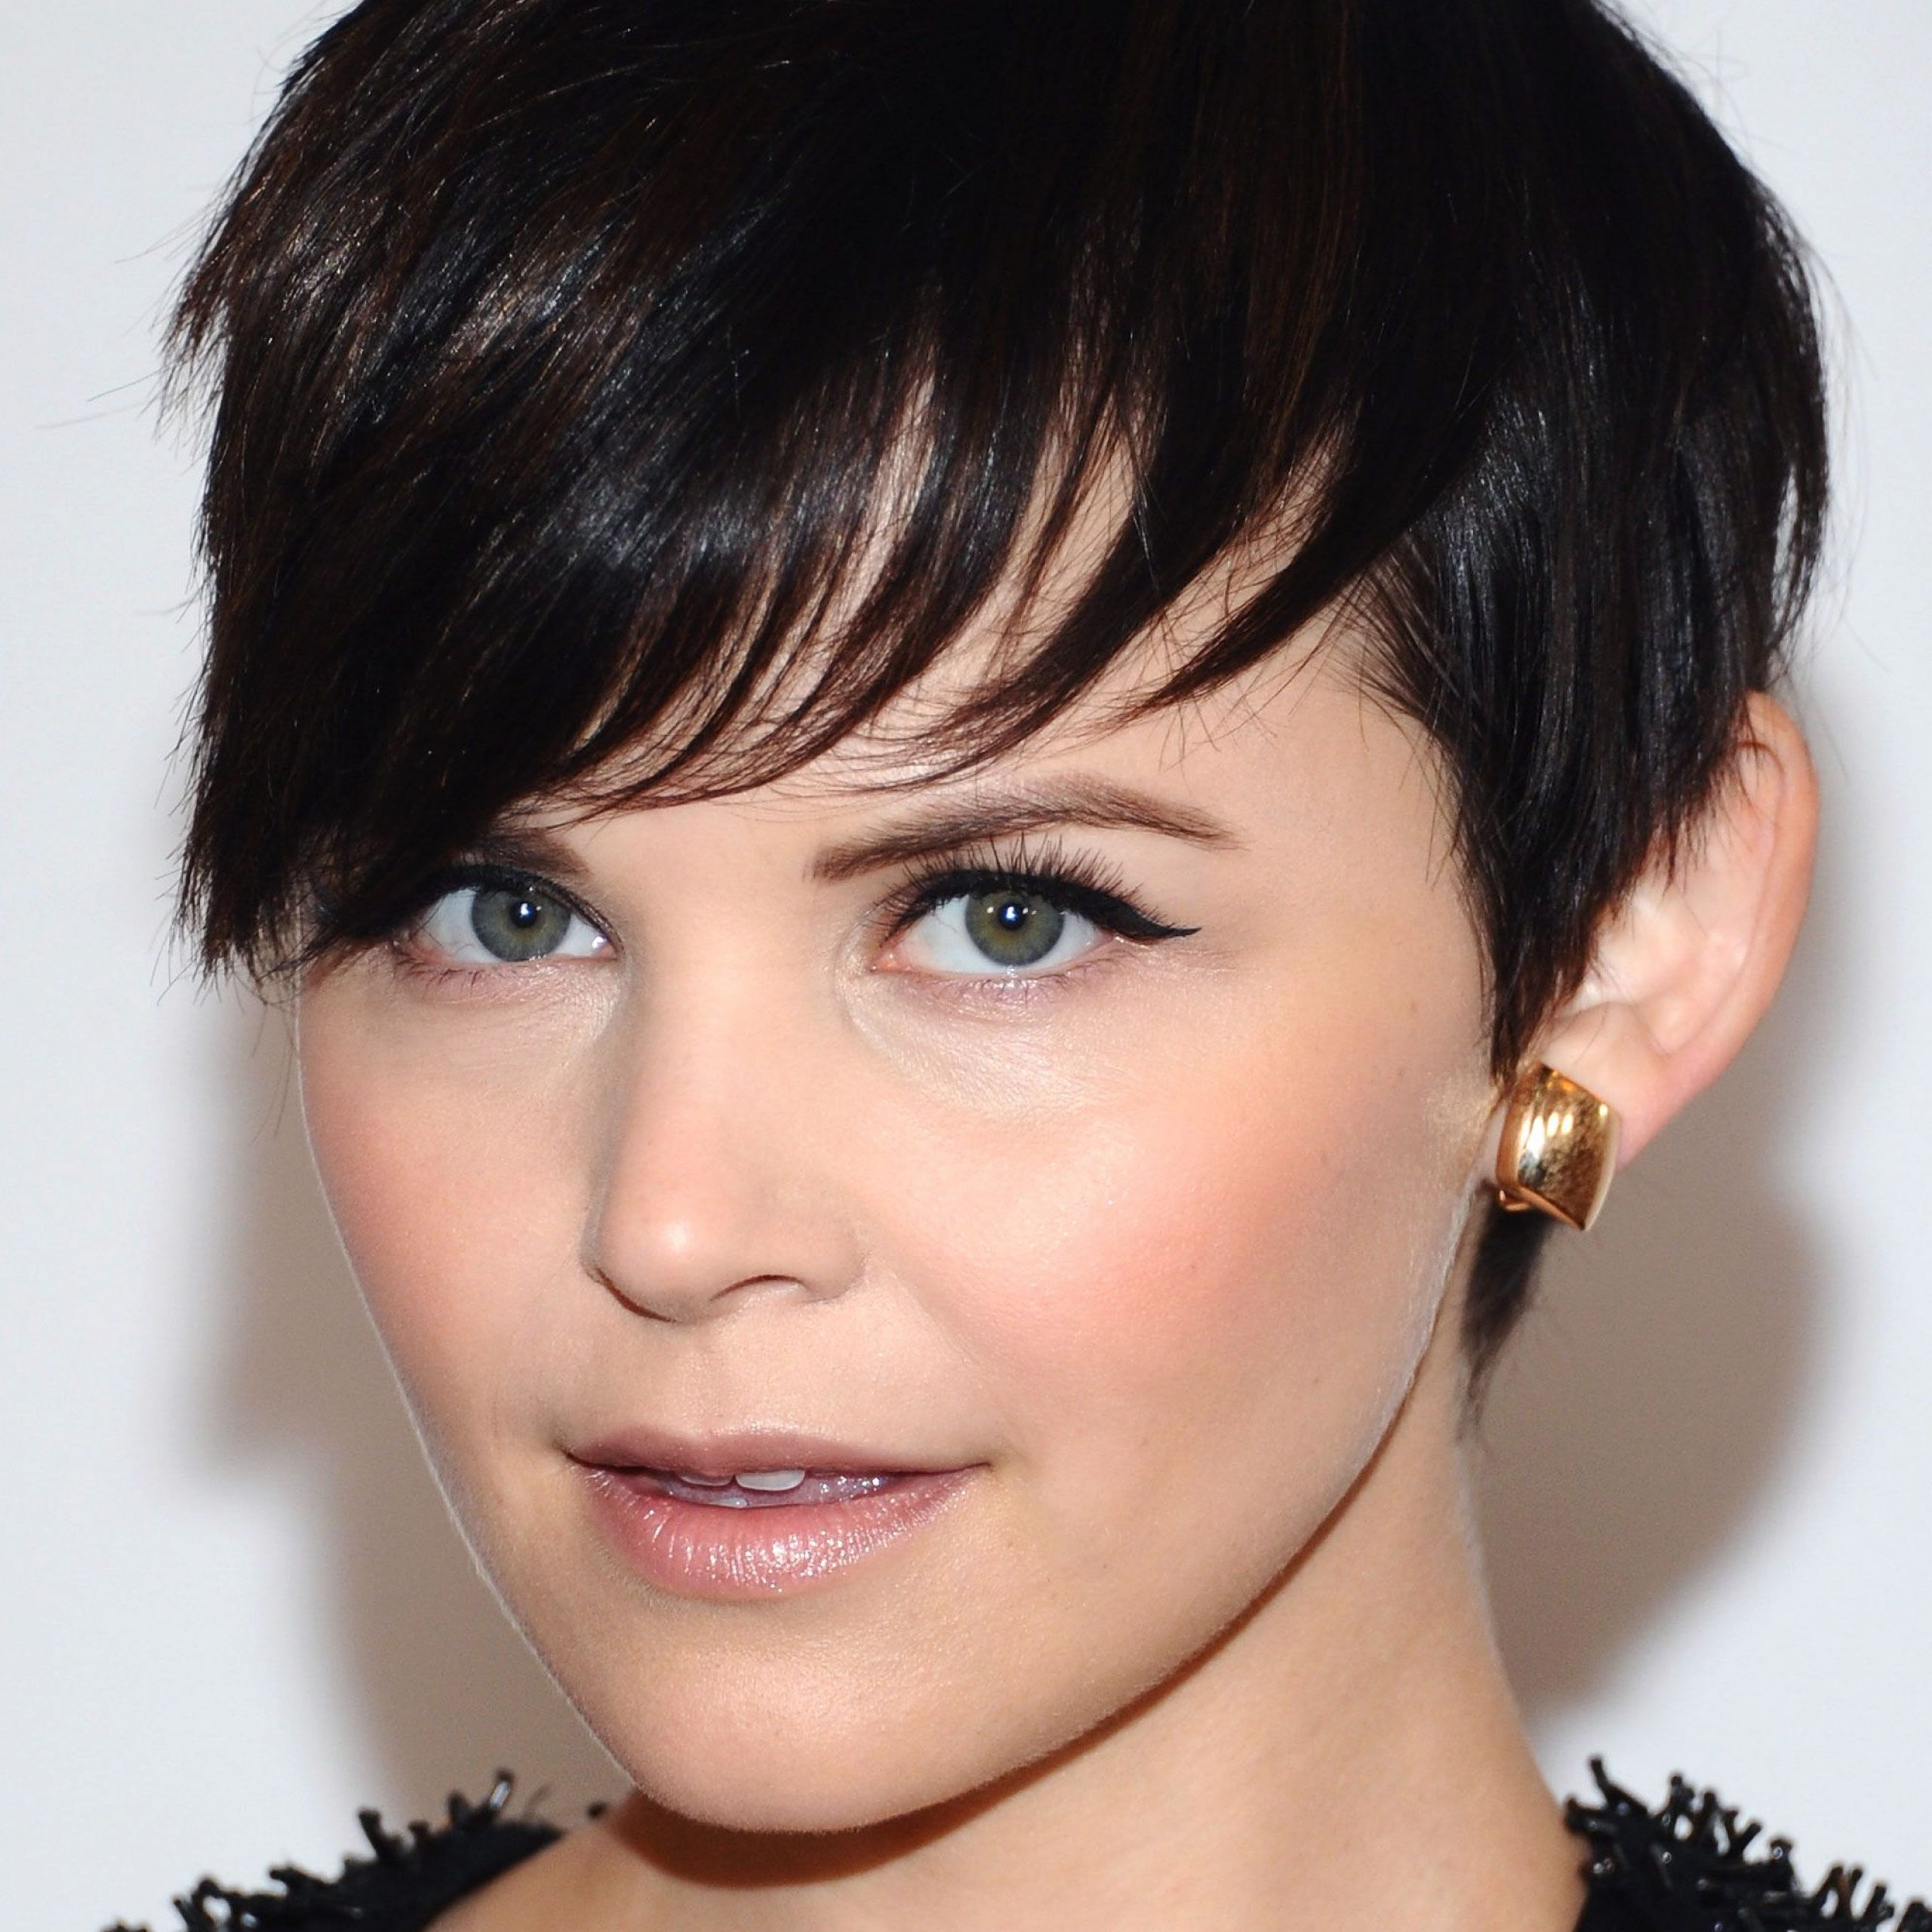 60+ Pixie Cuts We Love For 2020 – Short Pixie Hairstyles Within Most Up To Date Pixie Haircuts With Wispy Bangs (View 4 of 20)